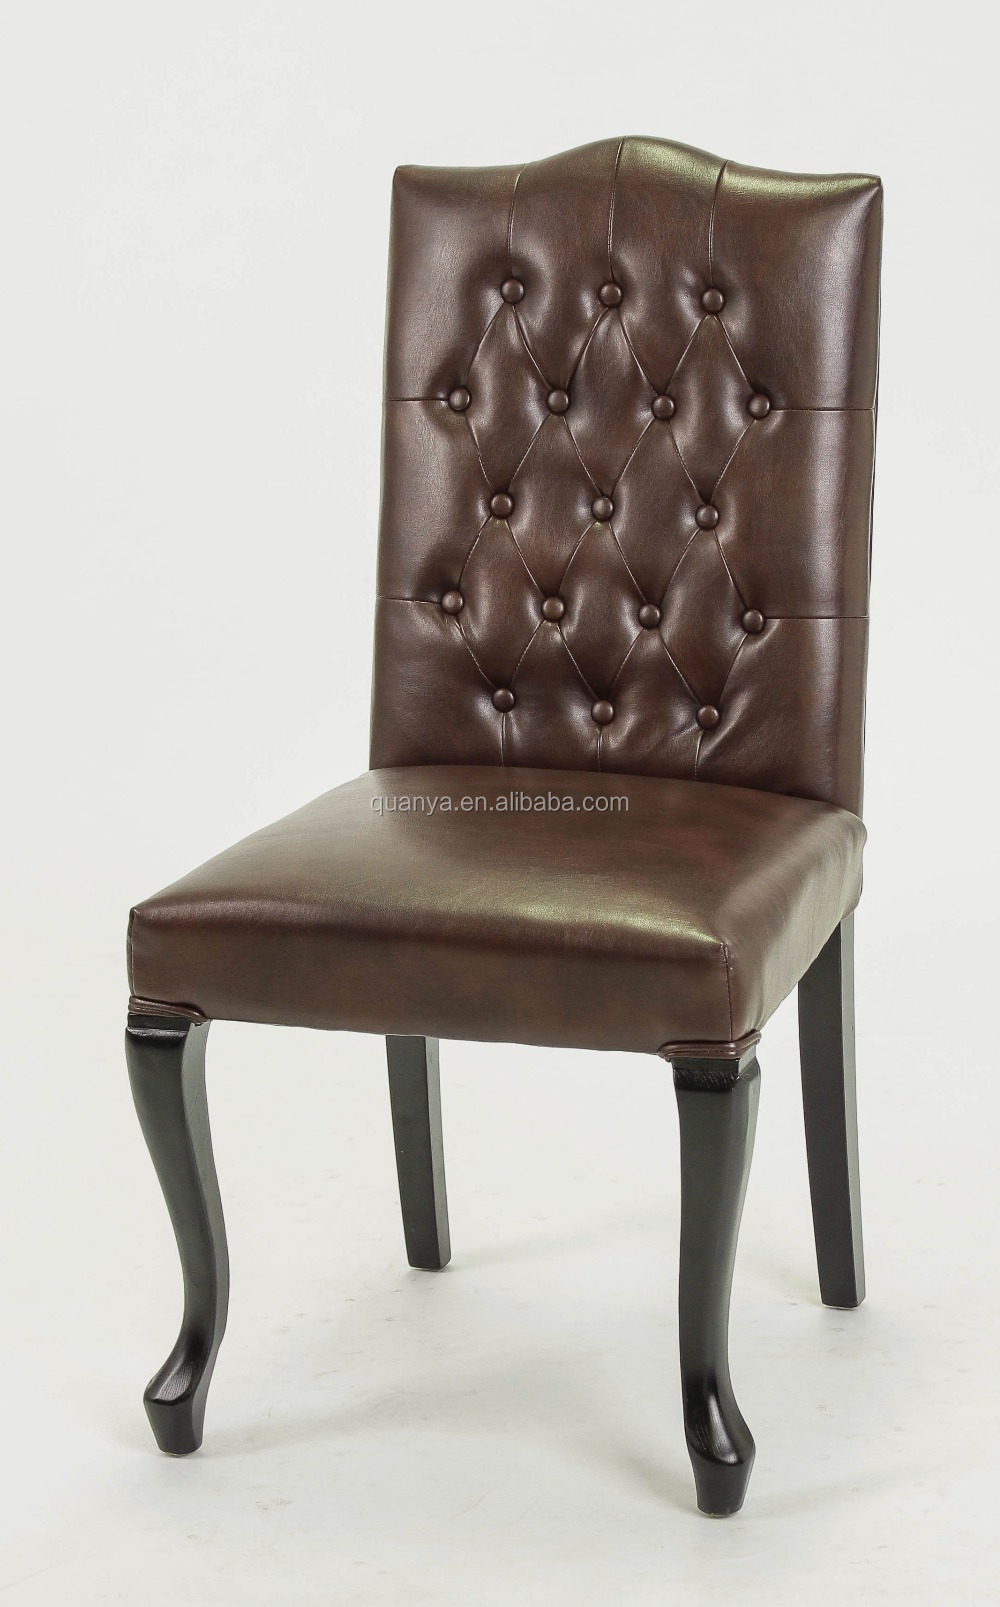 European style luxury leather high back Oak wood dining chair